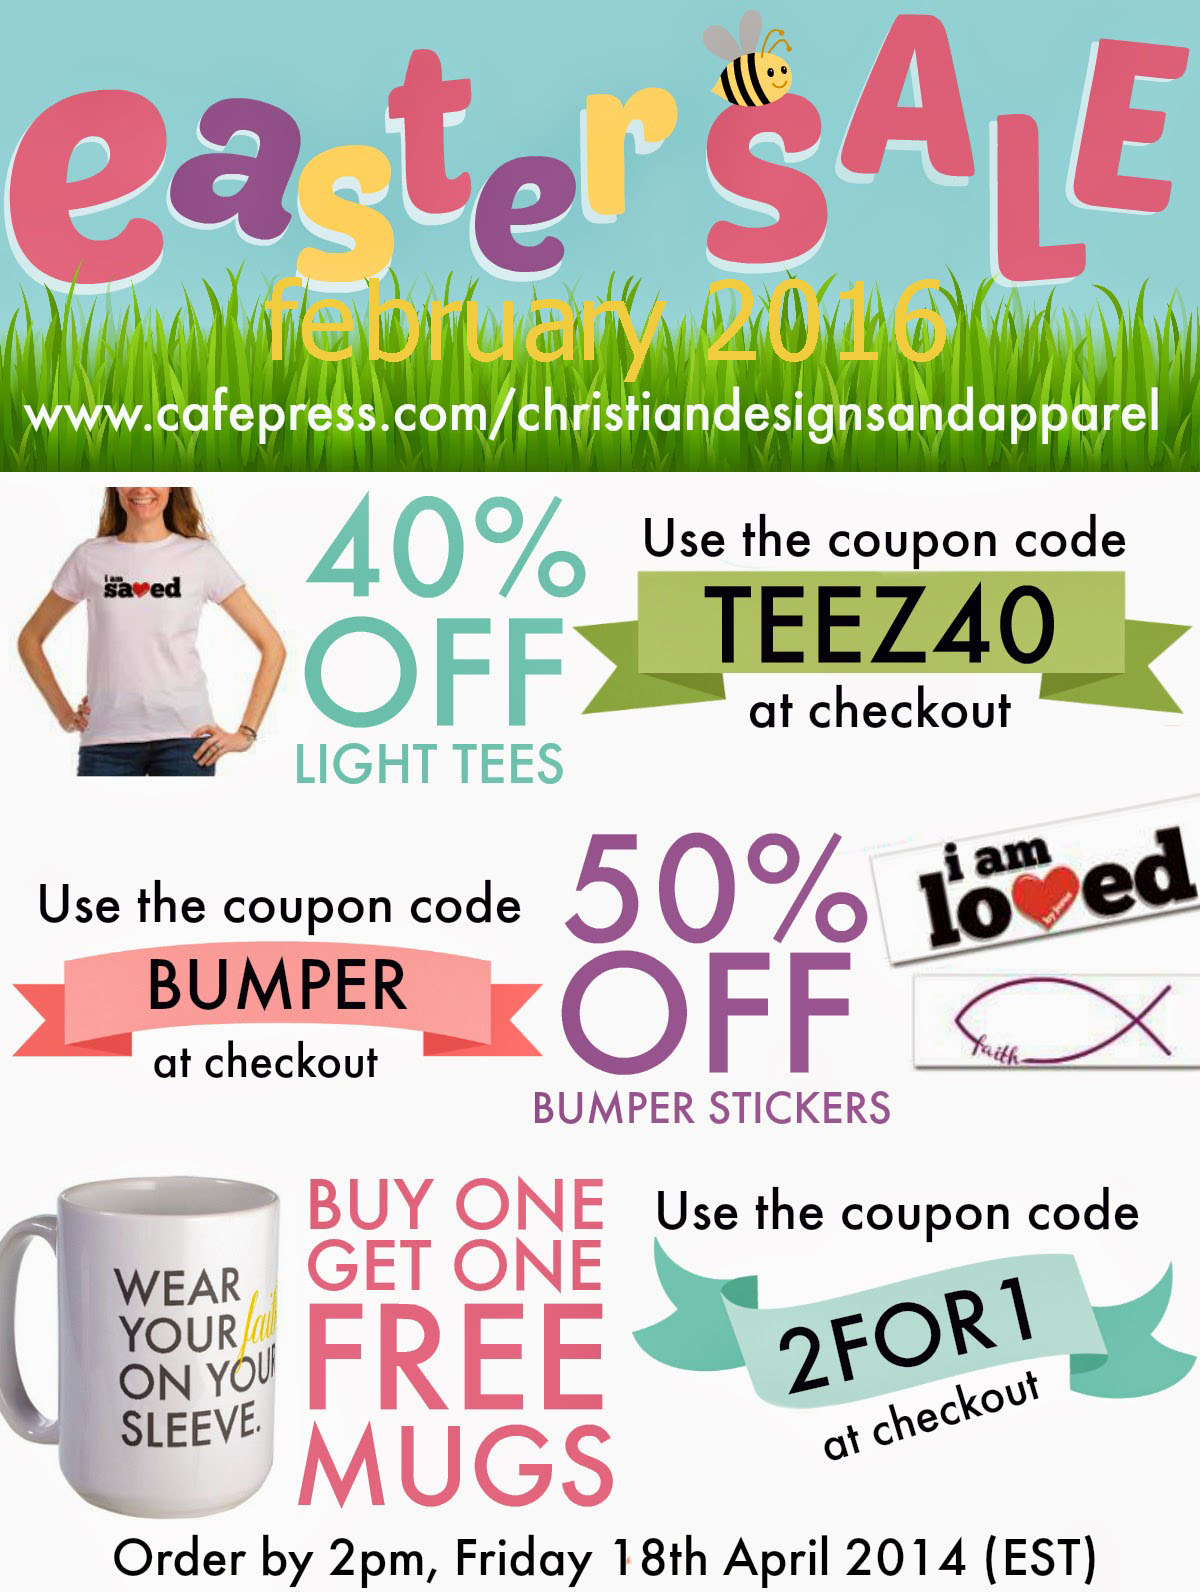 Cafepress discount coupons